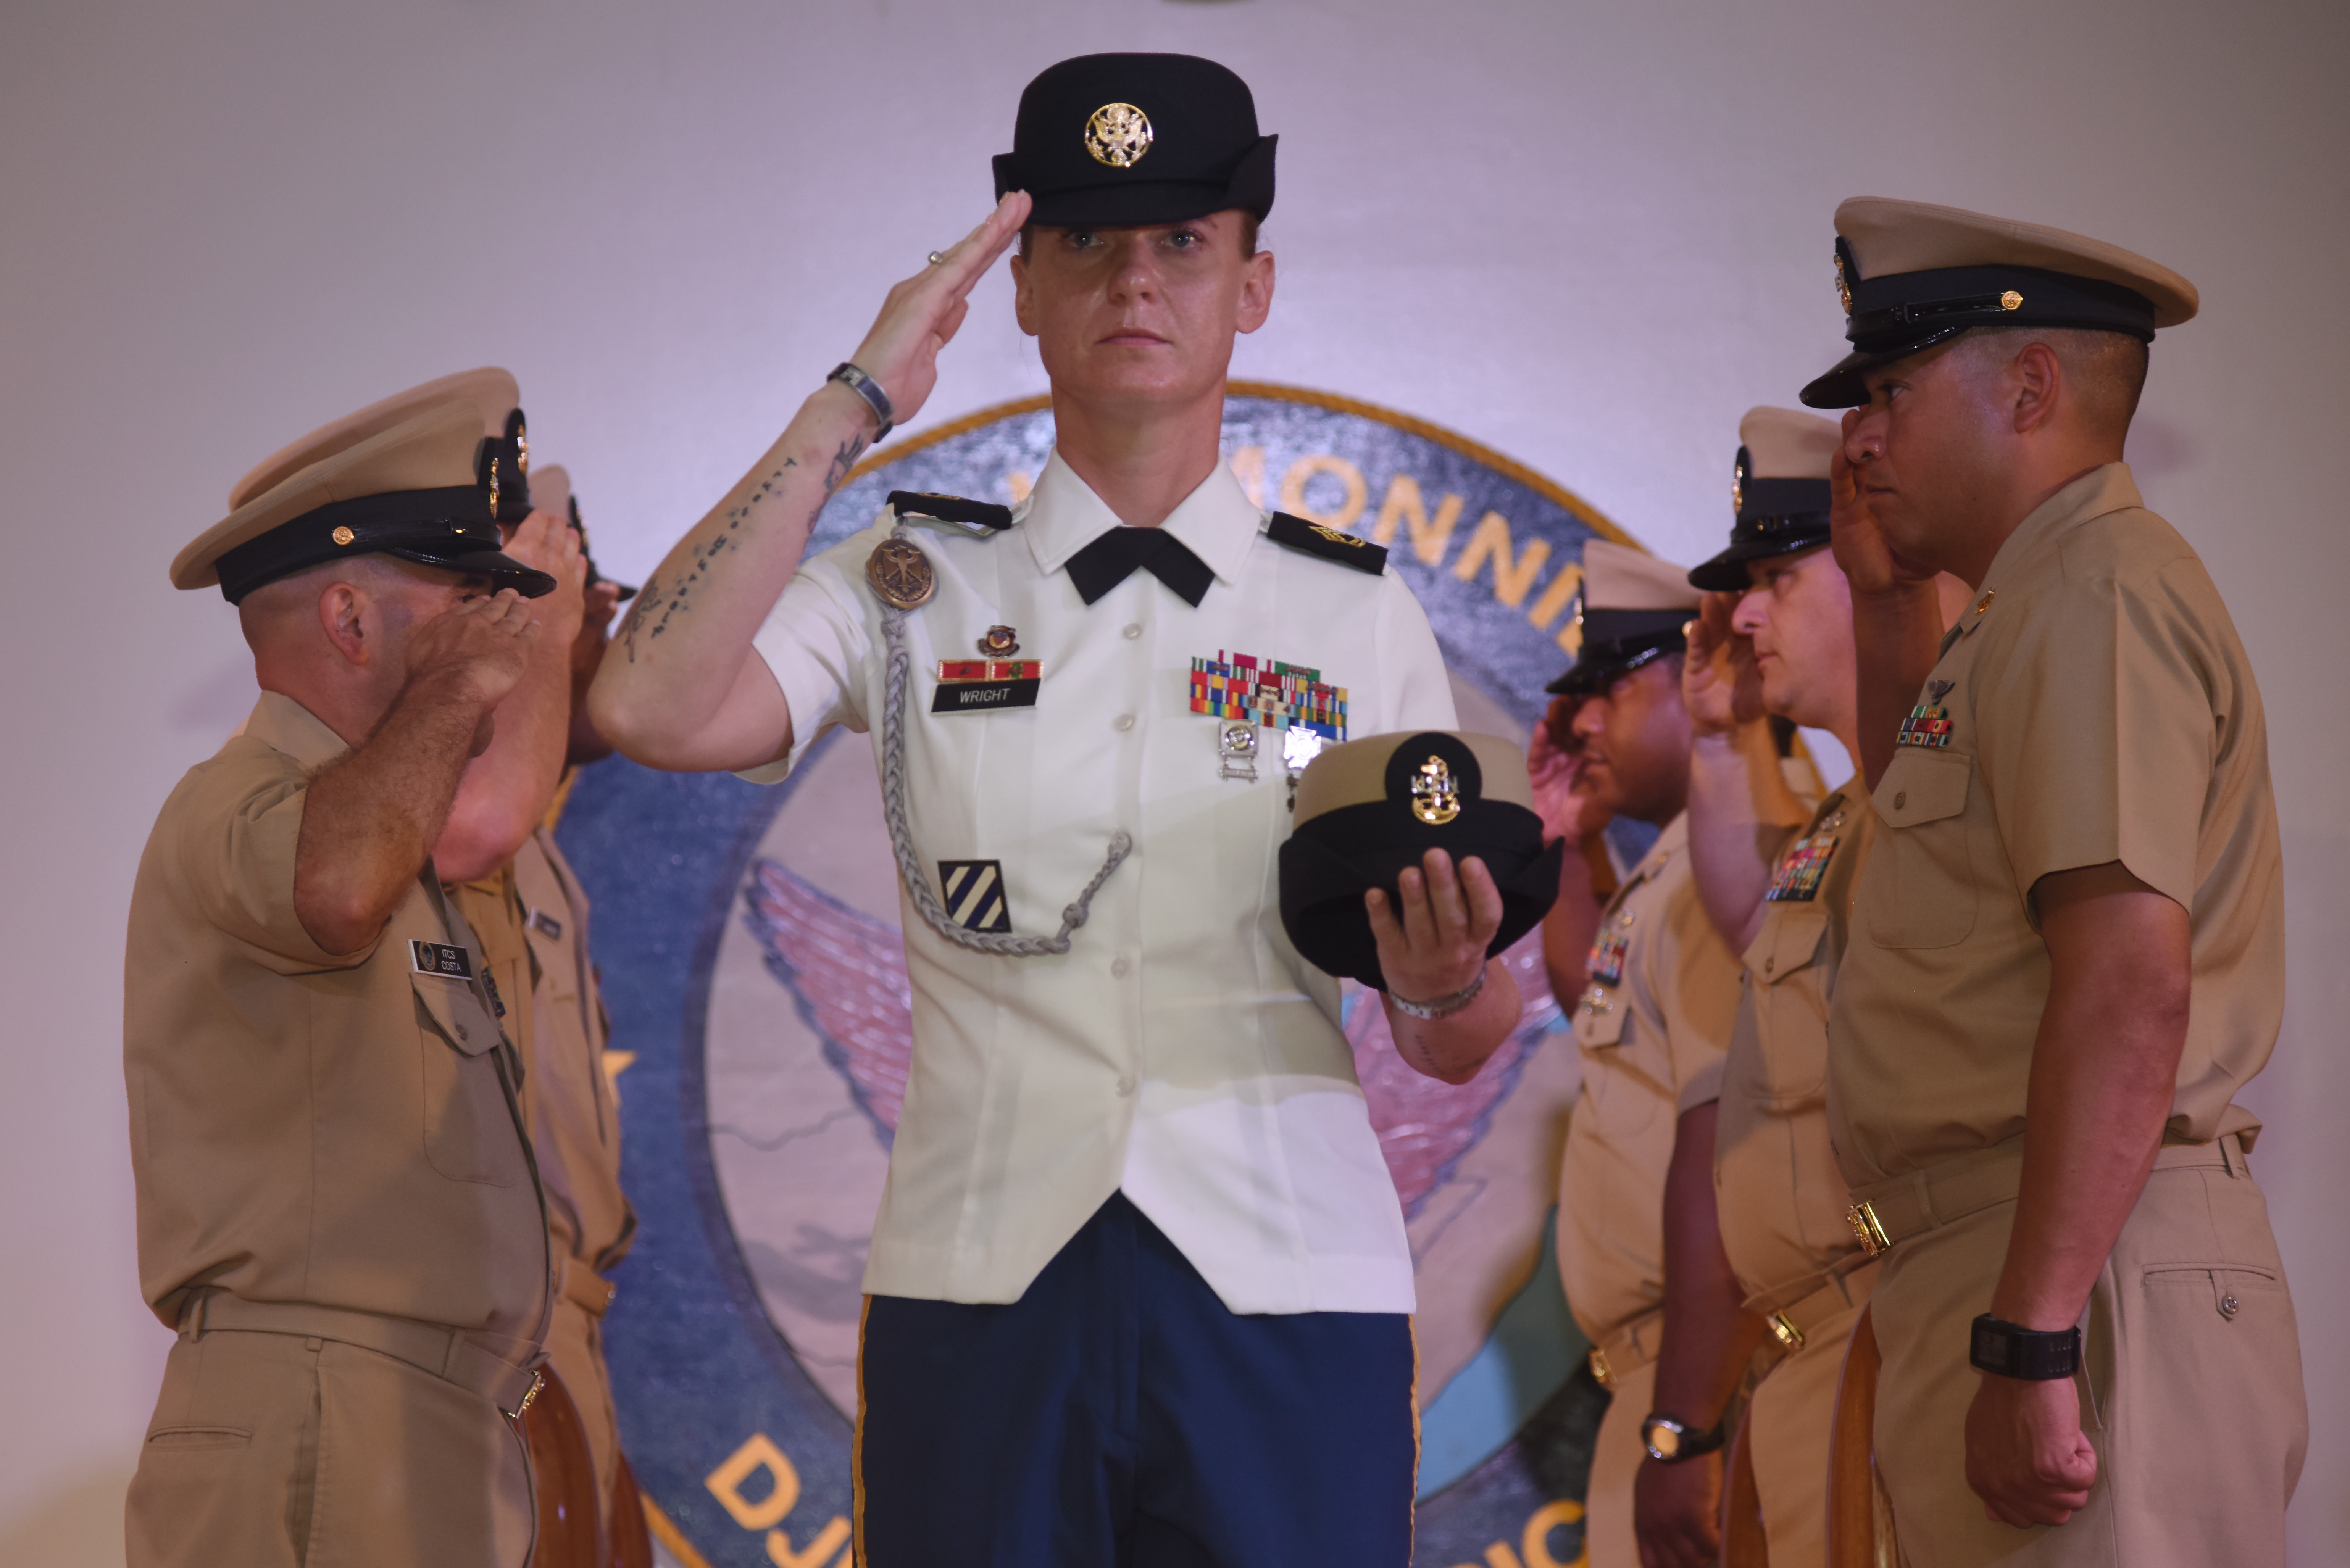 U.S. Army Sgt. 1st Class Heather Wright, gives a salute during a pinning ceremony at Camp Lemonnier, Djibouti, Sept. 16, 2015.  Wright was the only Army soldier to attend the Navy Chief Petty Officer 365 Phase Two season at the camp, which teaches leadership and resiliency skills to senior noncommissioned officers.  (U.S. Air Force photo by Staff Sgt. Maria Bowman)